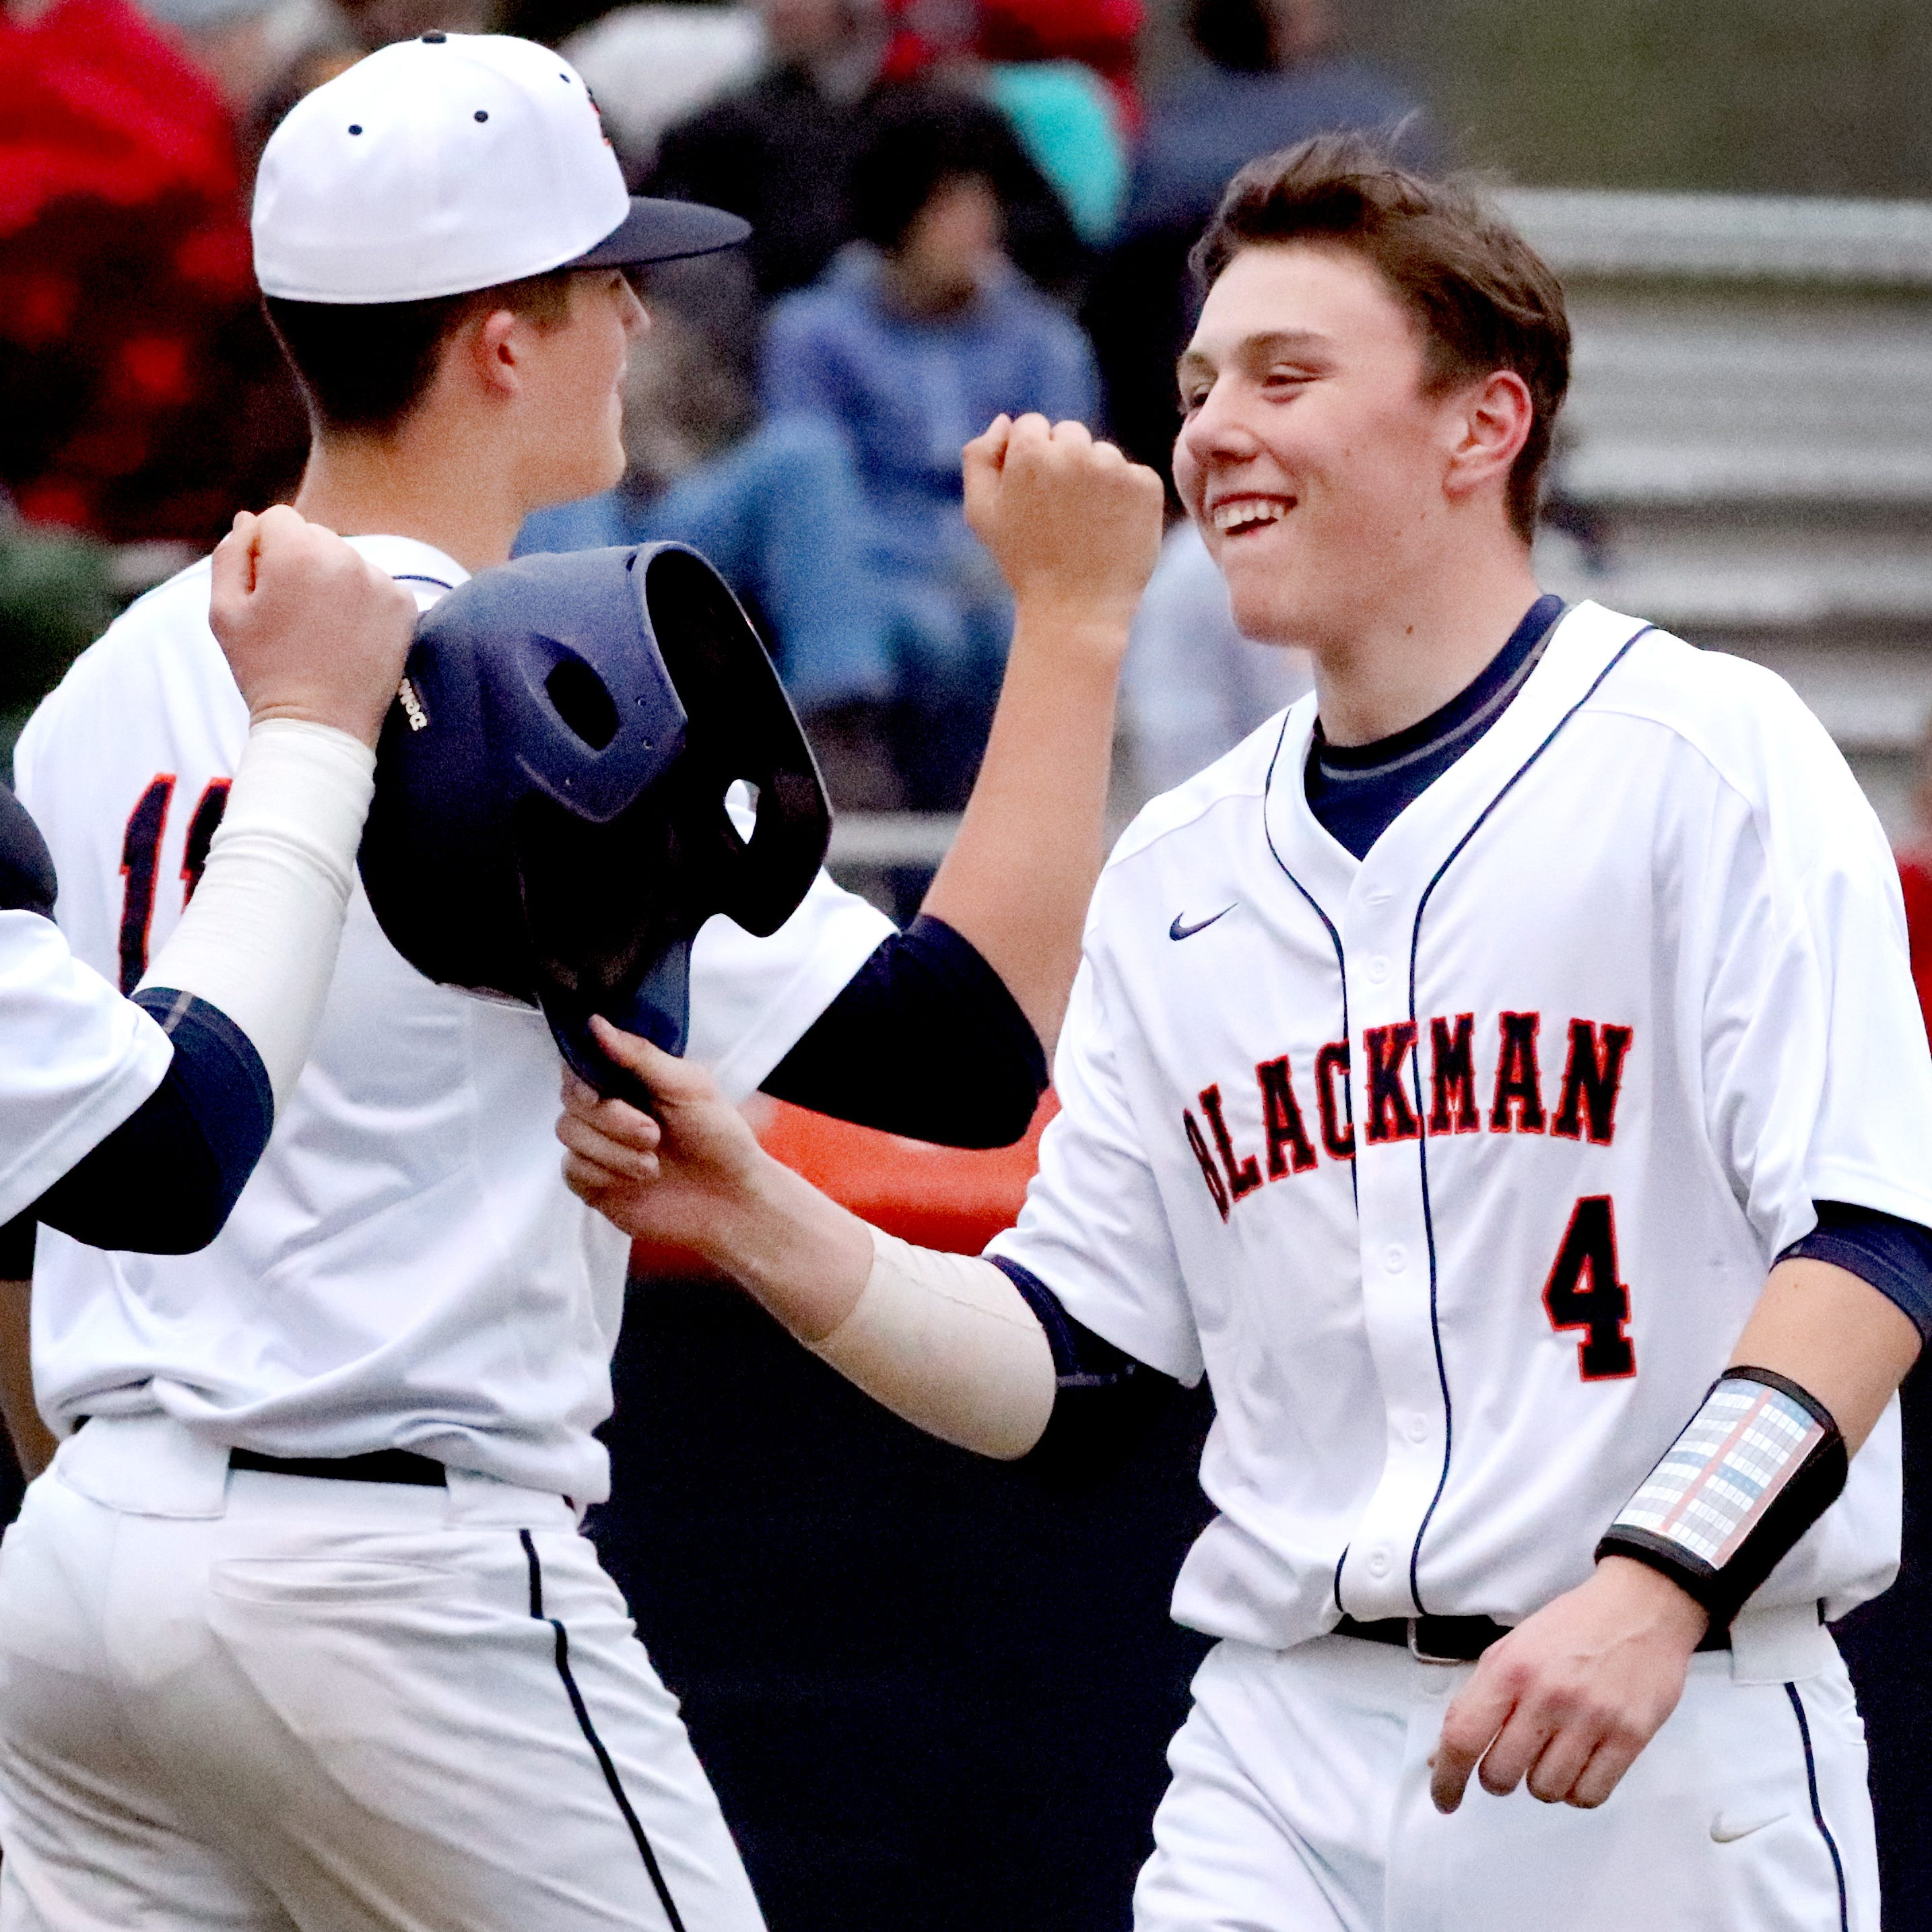 Blackman's baseball bats off to blazing start to 2019 season